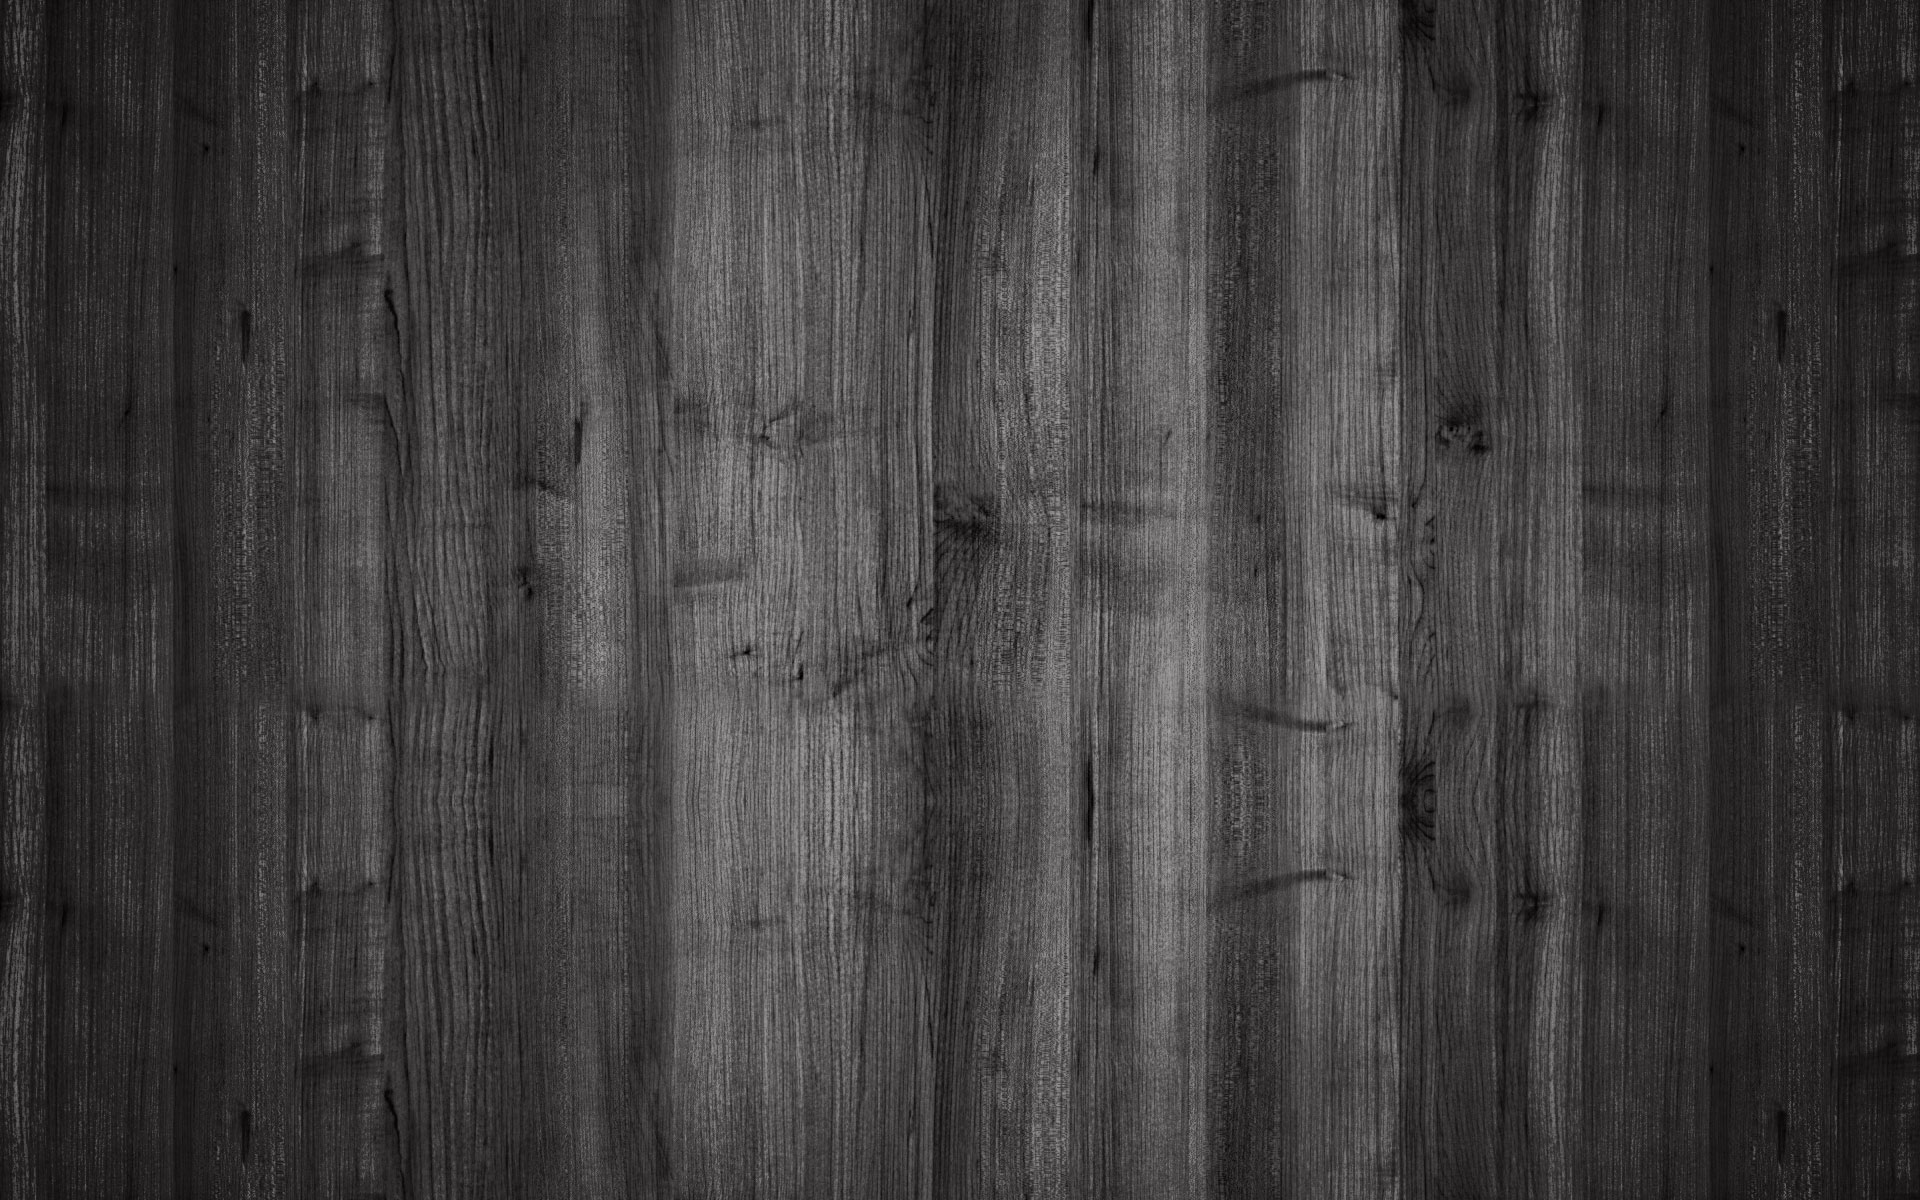 wood grain wallpaper build tech construction - Wood Grain Wall Paper